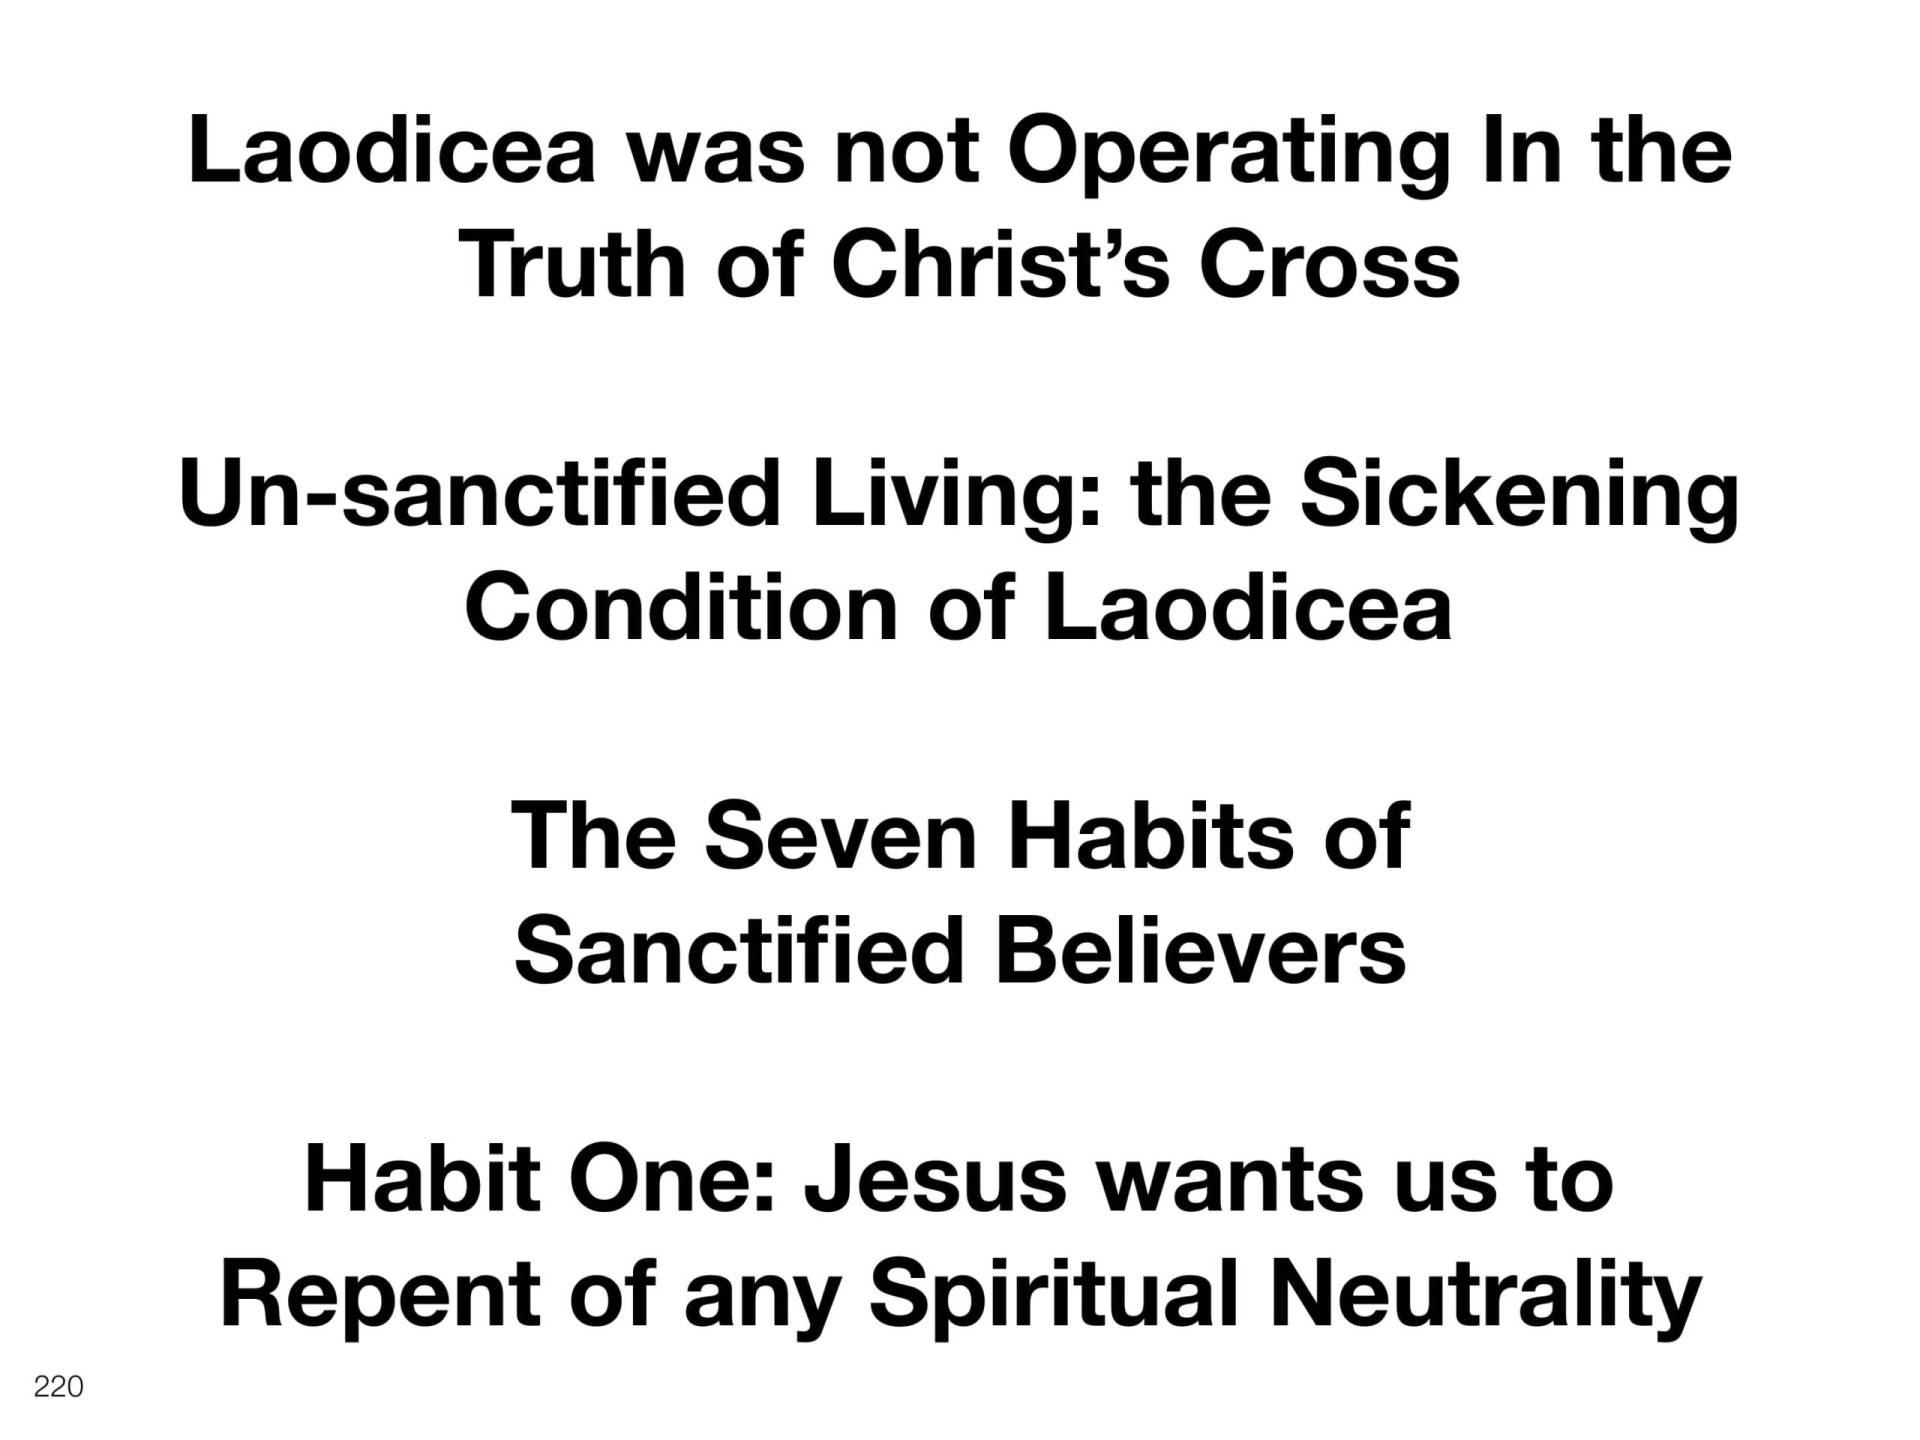 WOL2018 Hungary - 10 - Christ's Last Words To His Church - The Seven Habits of Sanctified Believers (10)